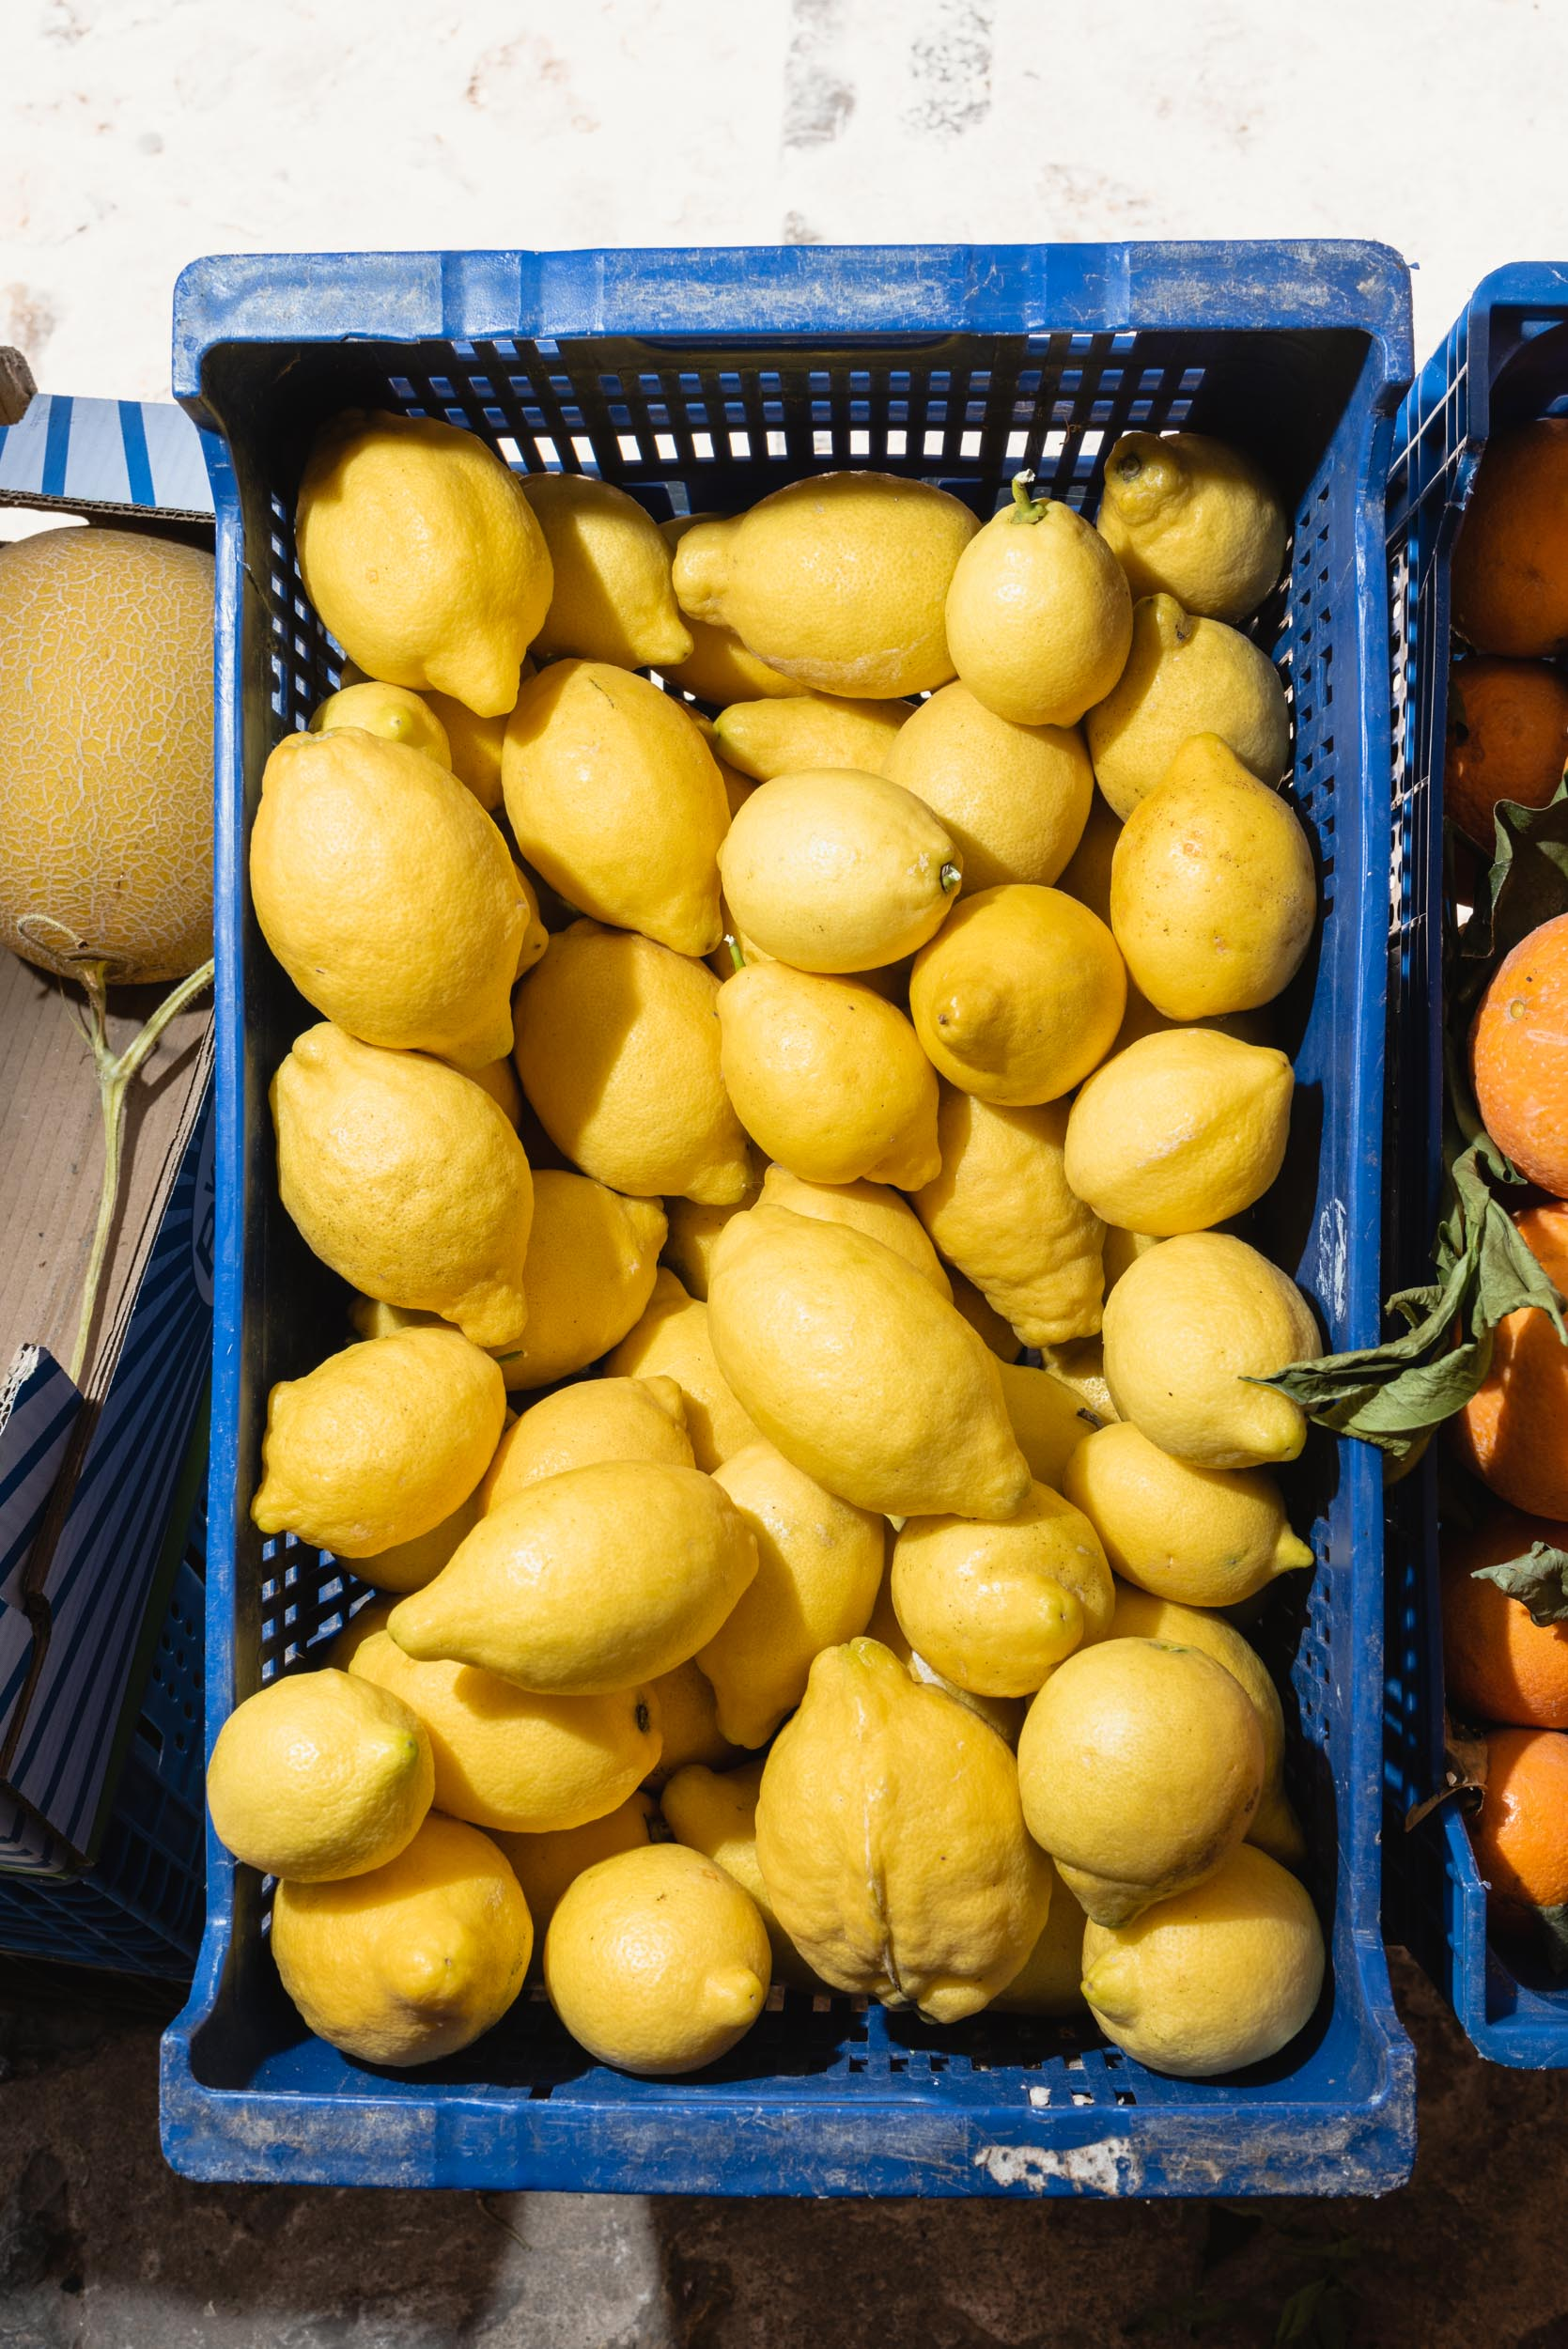 Yellow lemons for sale in blue bin